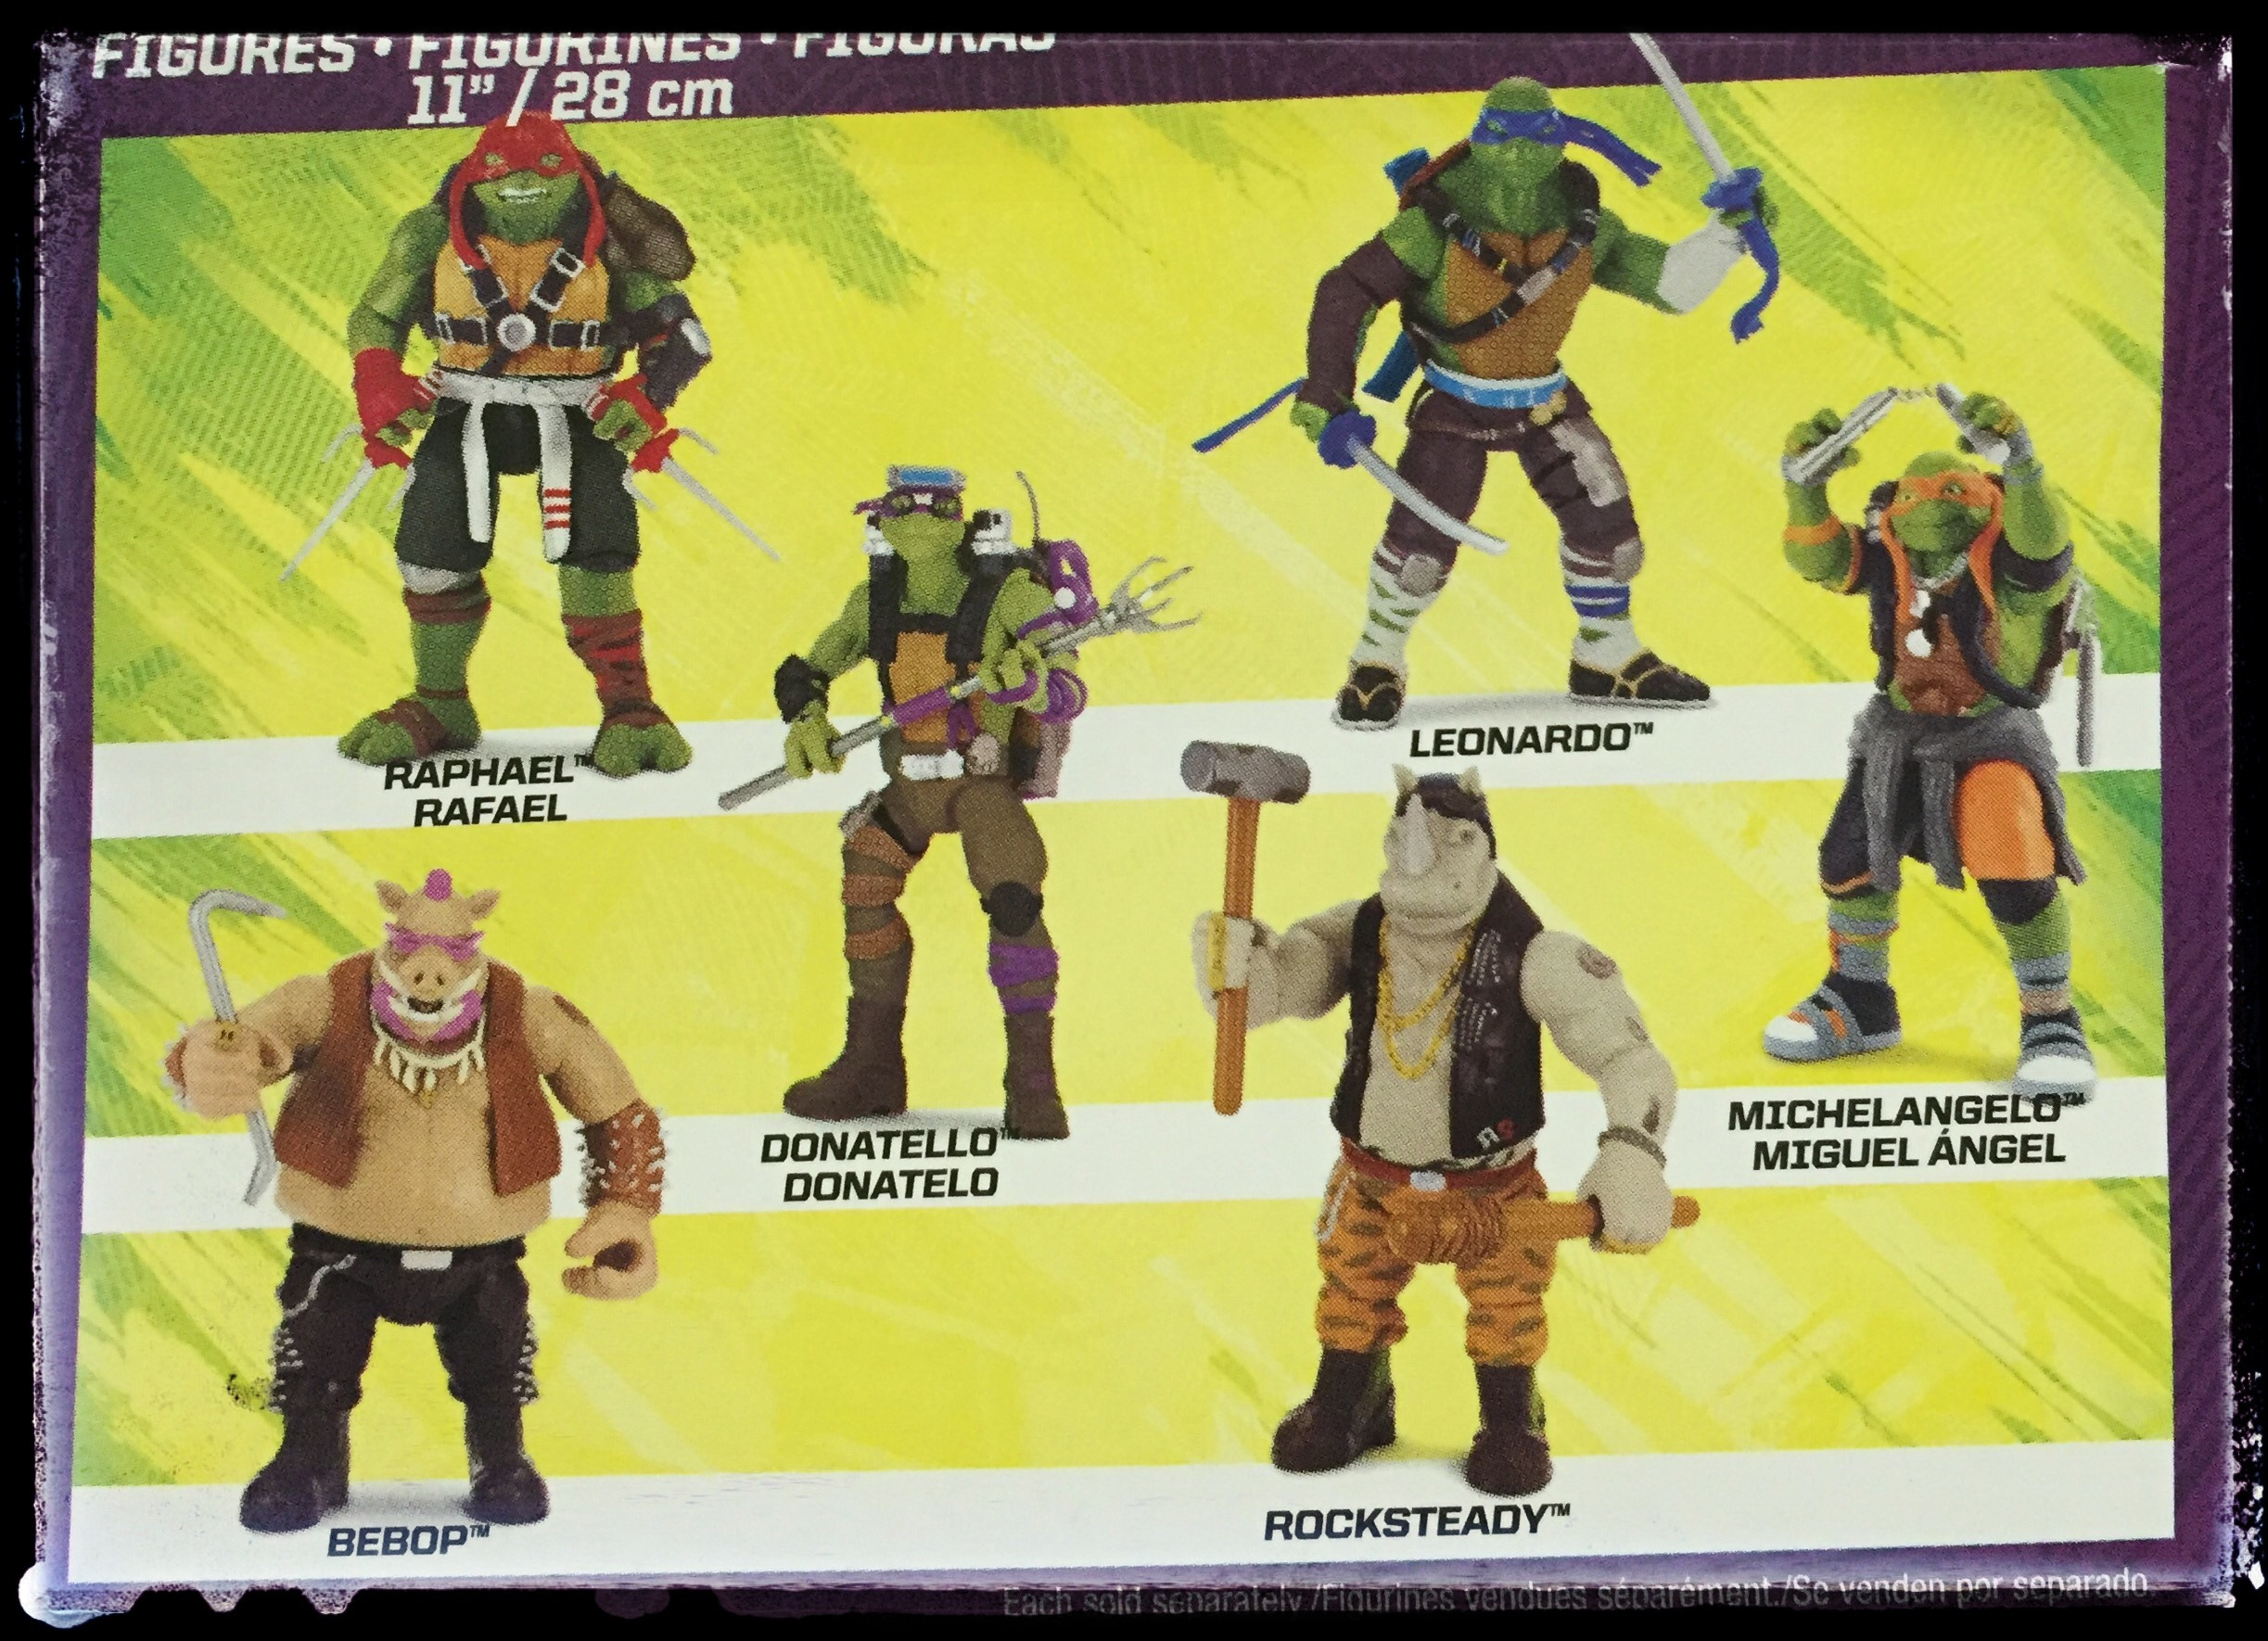 Ninja Turtles Out Of The Shadows Toys 1st Look The